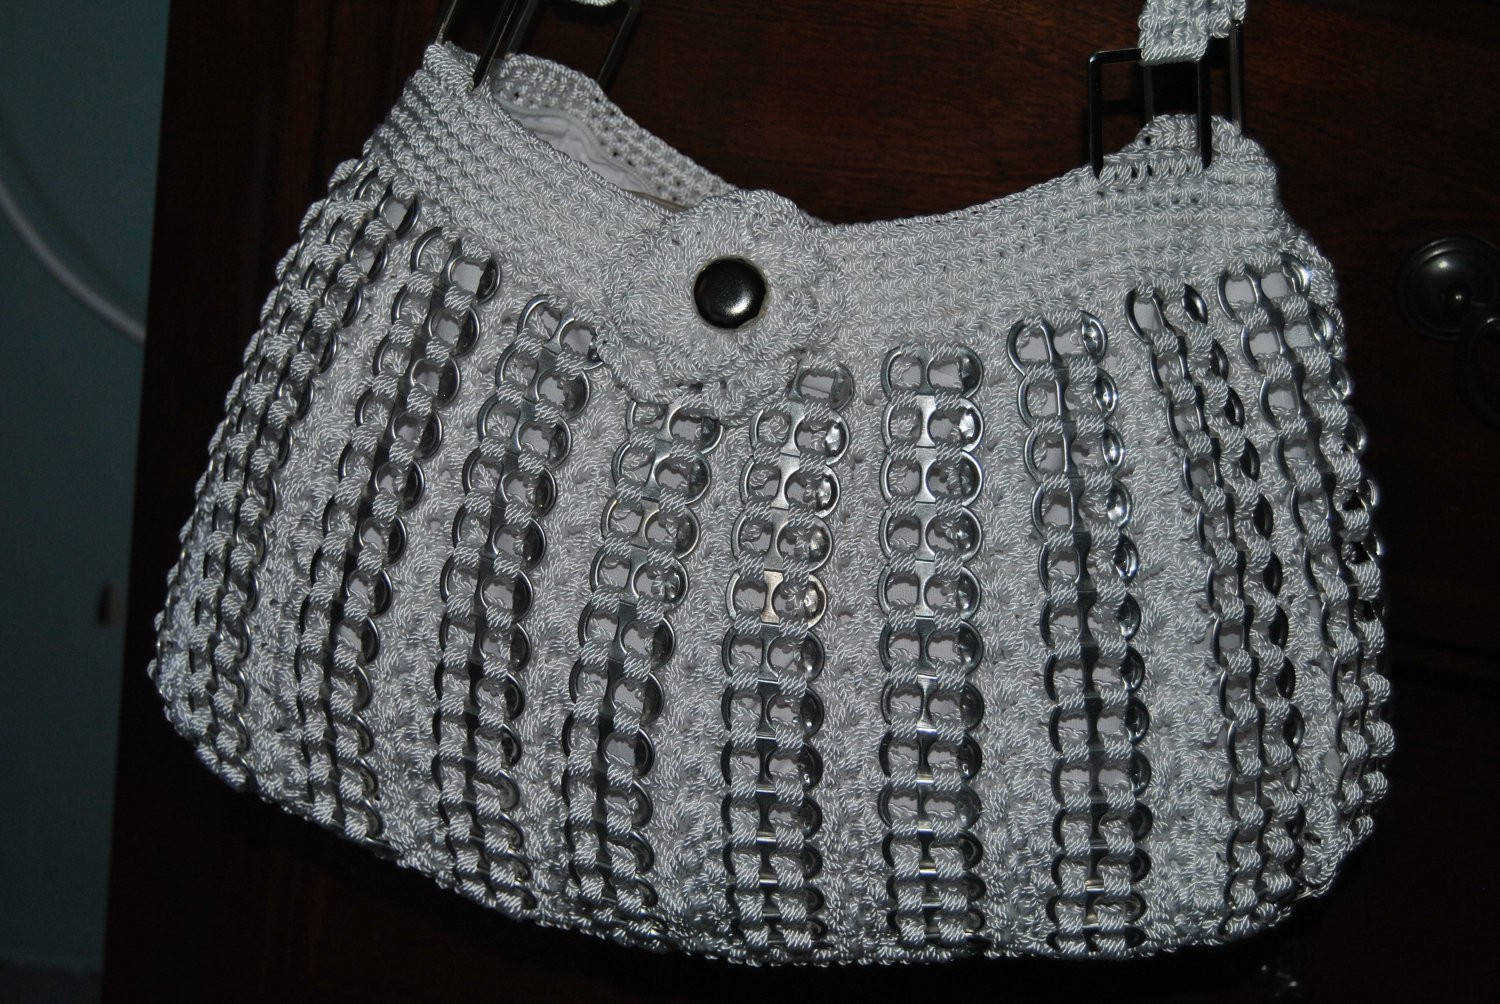 Unique Handmade Crochet Upscycled Pop soda Tab Purse Handmade Crochet Of Delightful 40 Pics Handmade Crochet